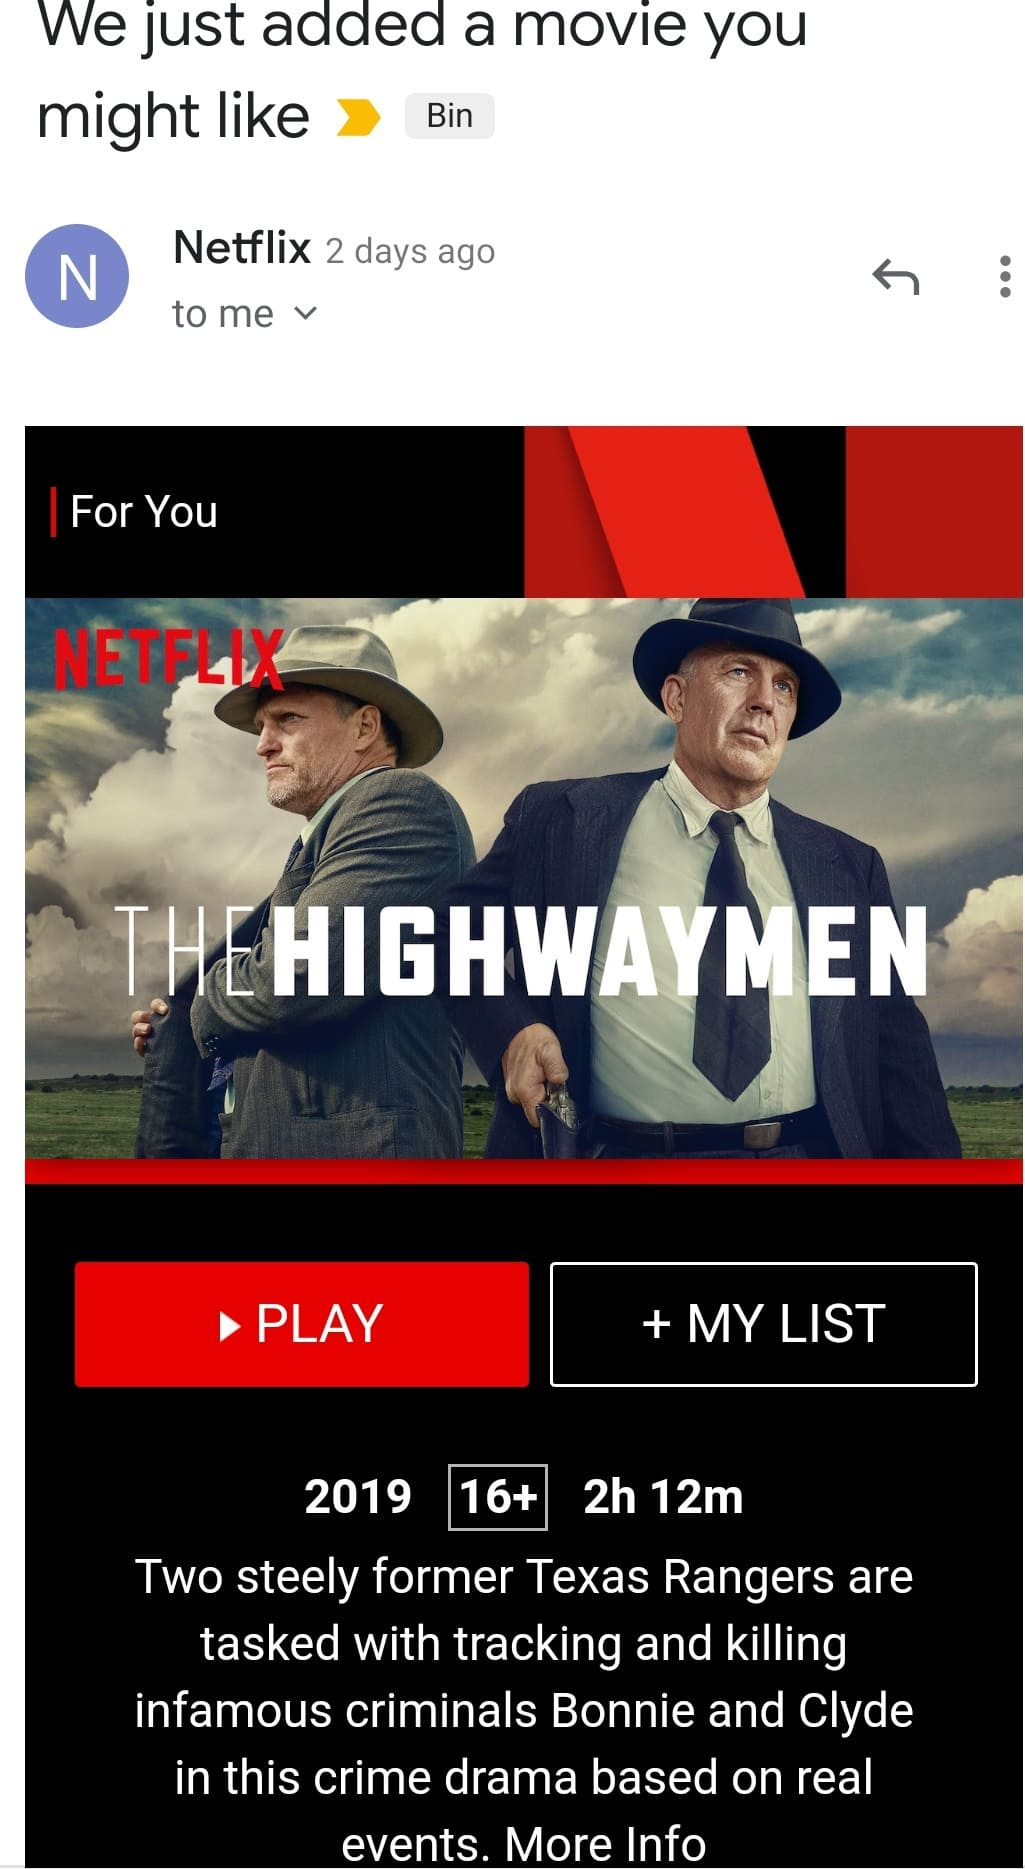 netflix growth hacking examples email